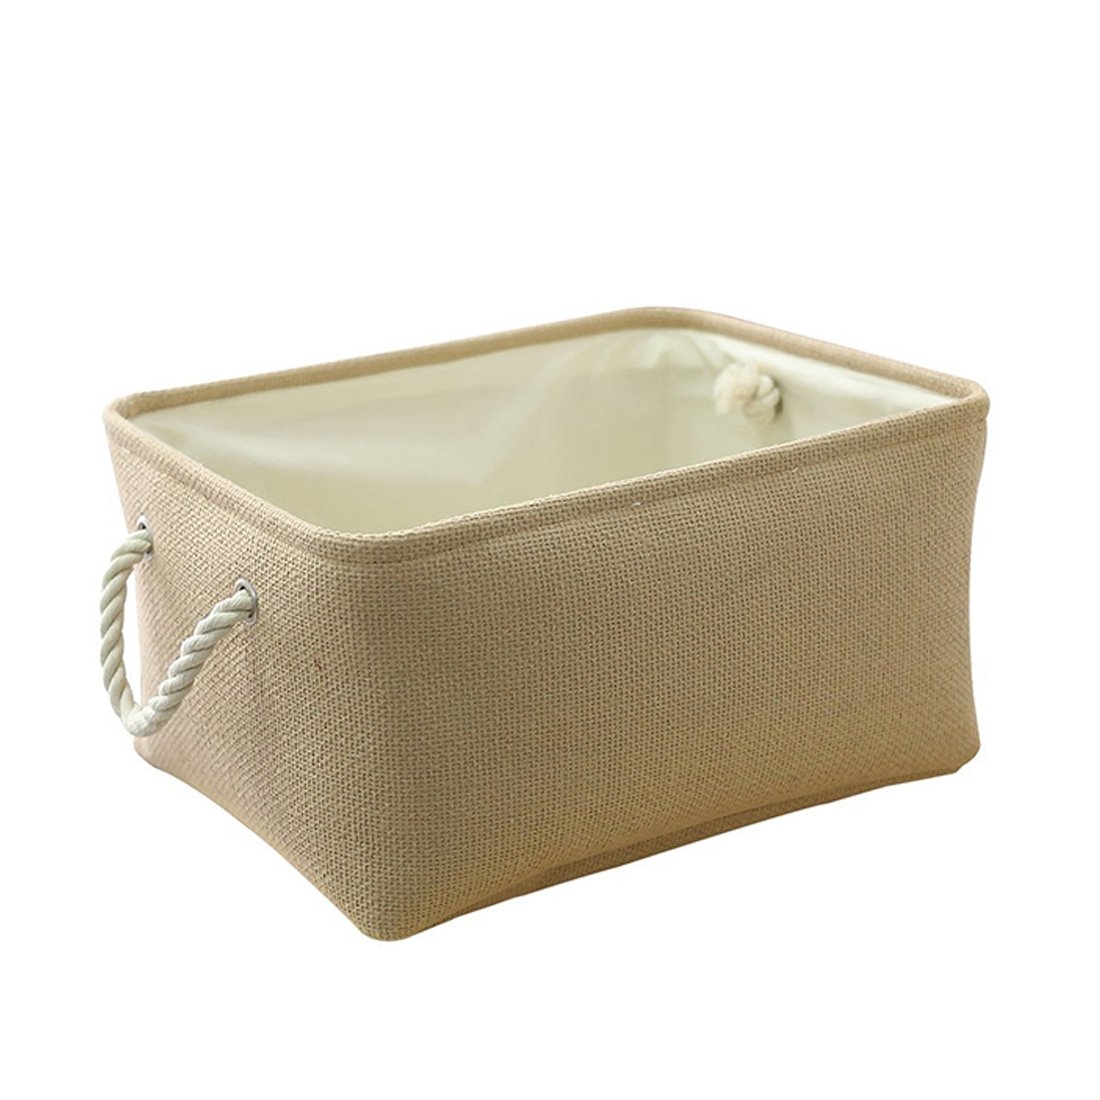 ZONEYILA Collapsible Storage Basket Fabric Linen Cloth Storage Bins,Organize Toys, Clothes, Baby Nursery, Kids Room,Living Room,Utility Room(Beige,L)